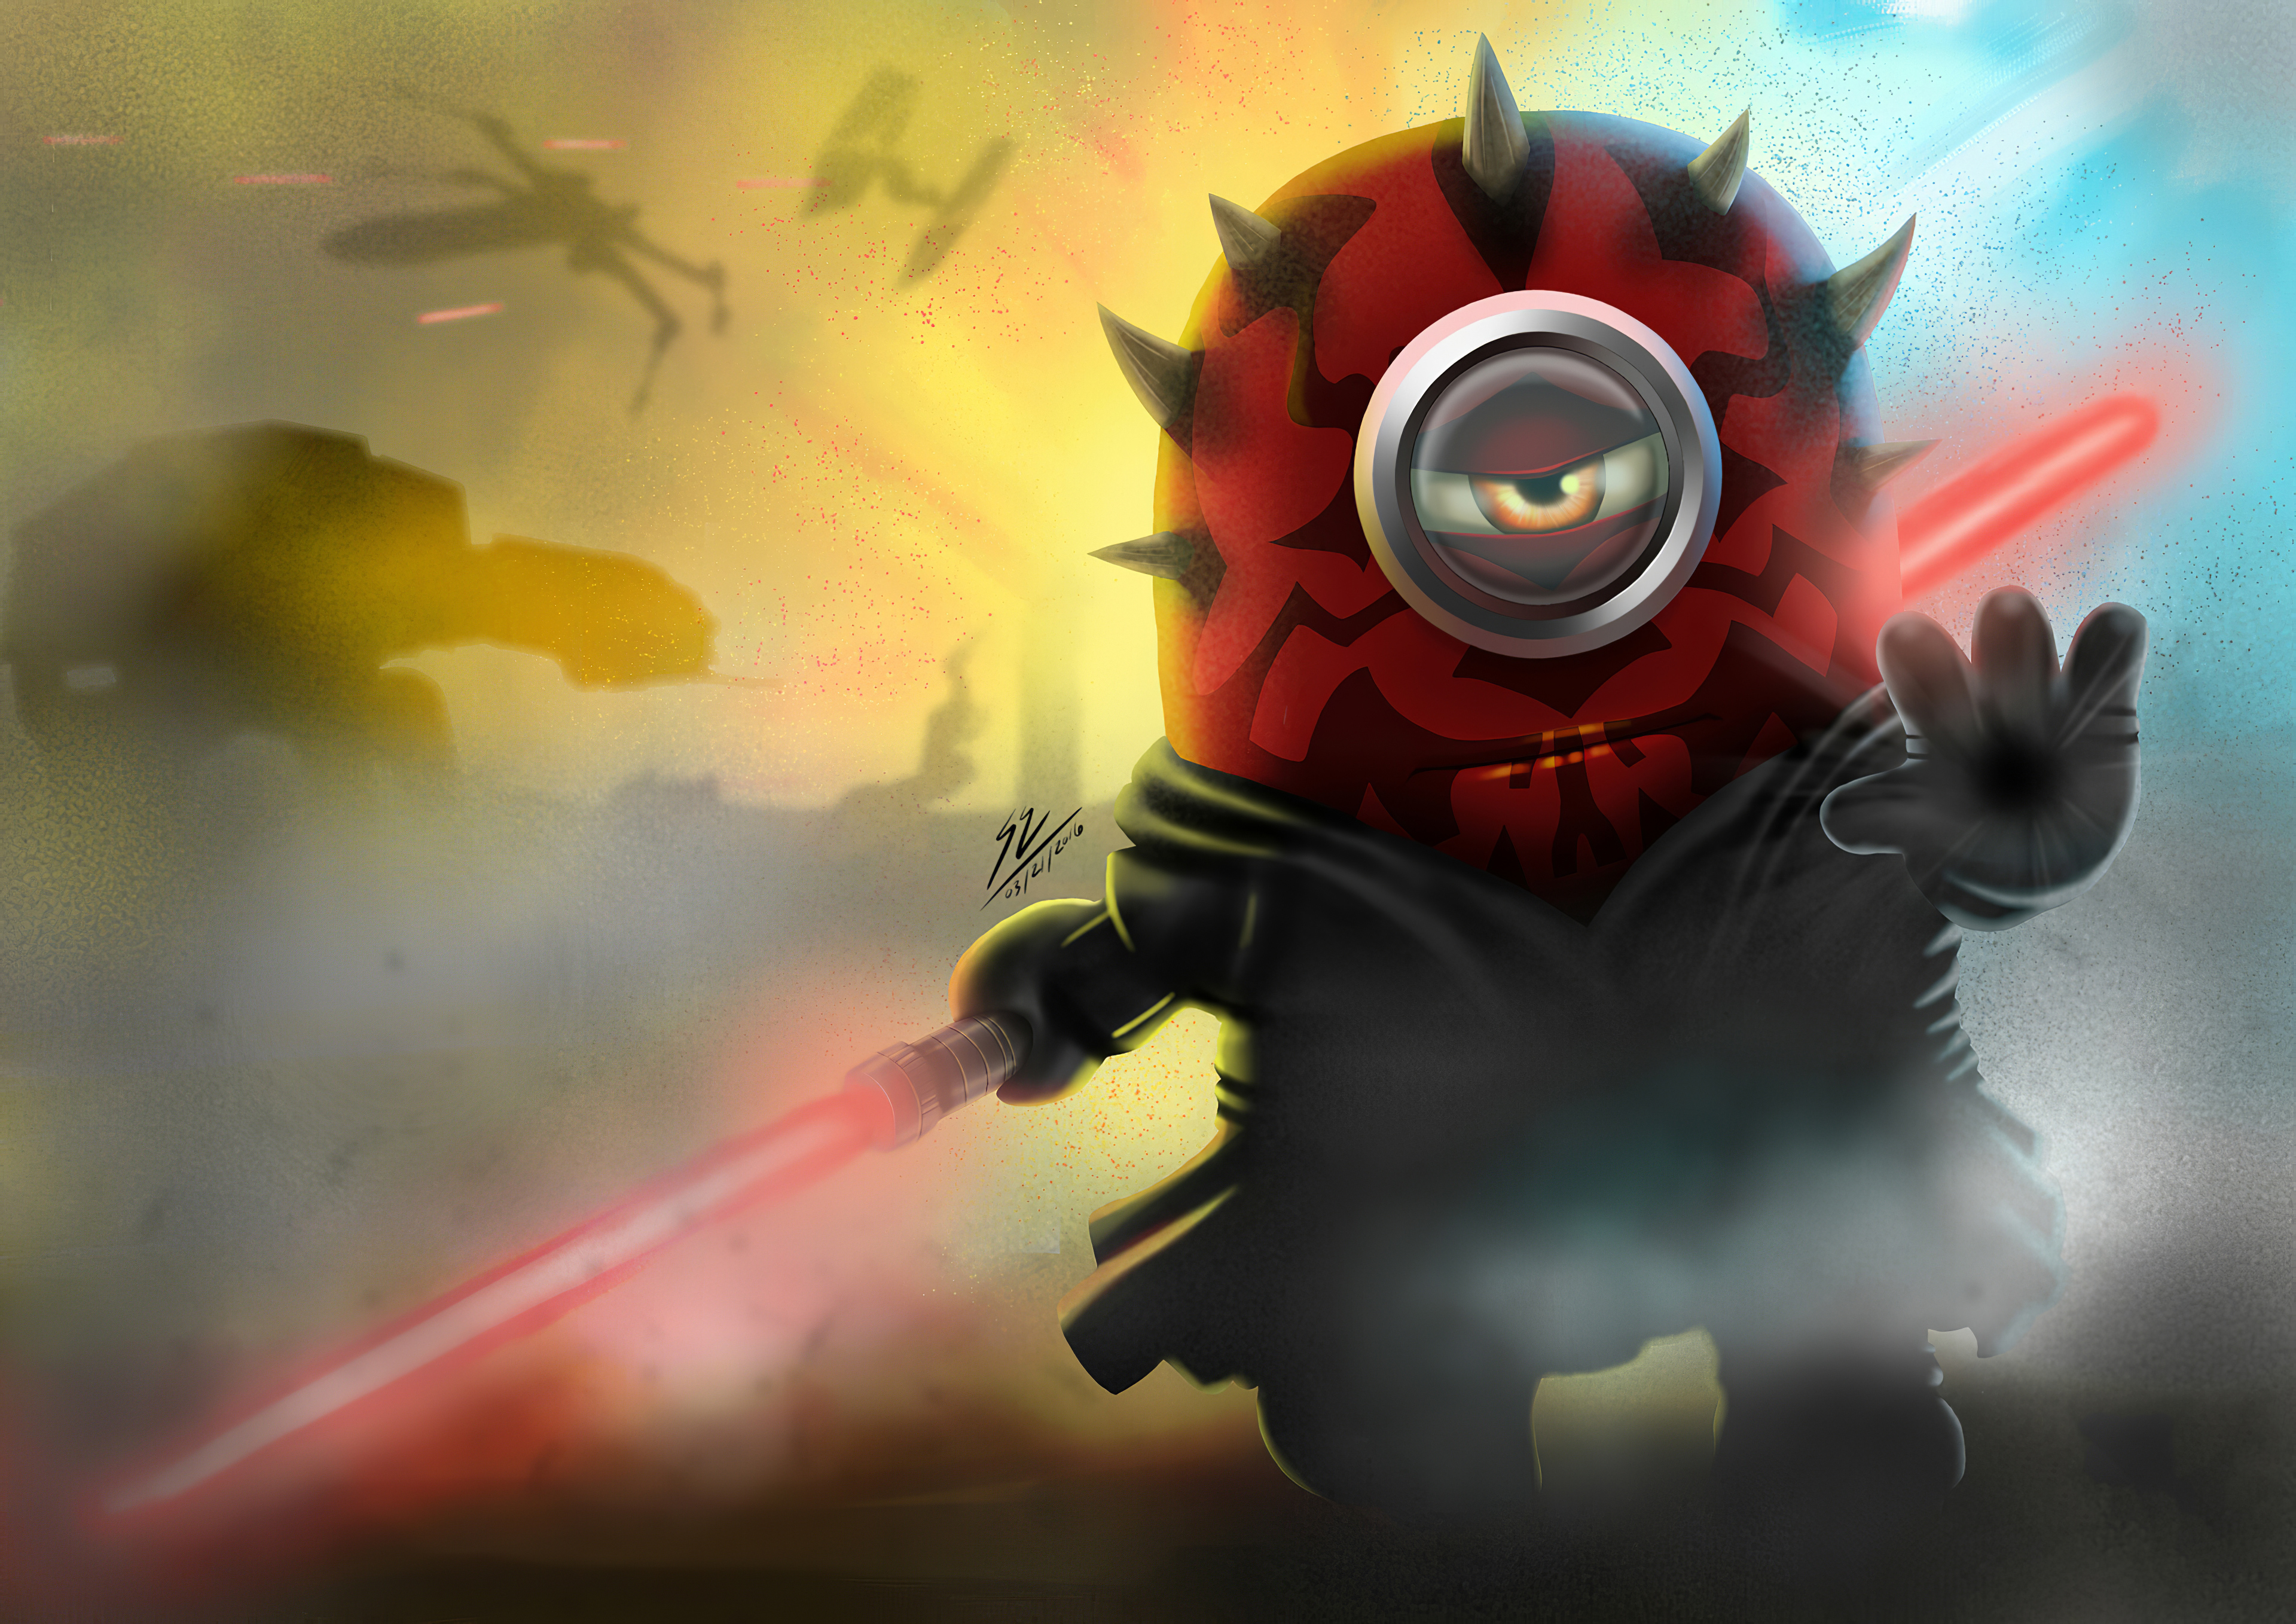 Fondos de pantalla Minion como Darth Maul de Star wars